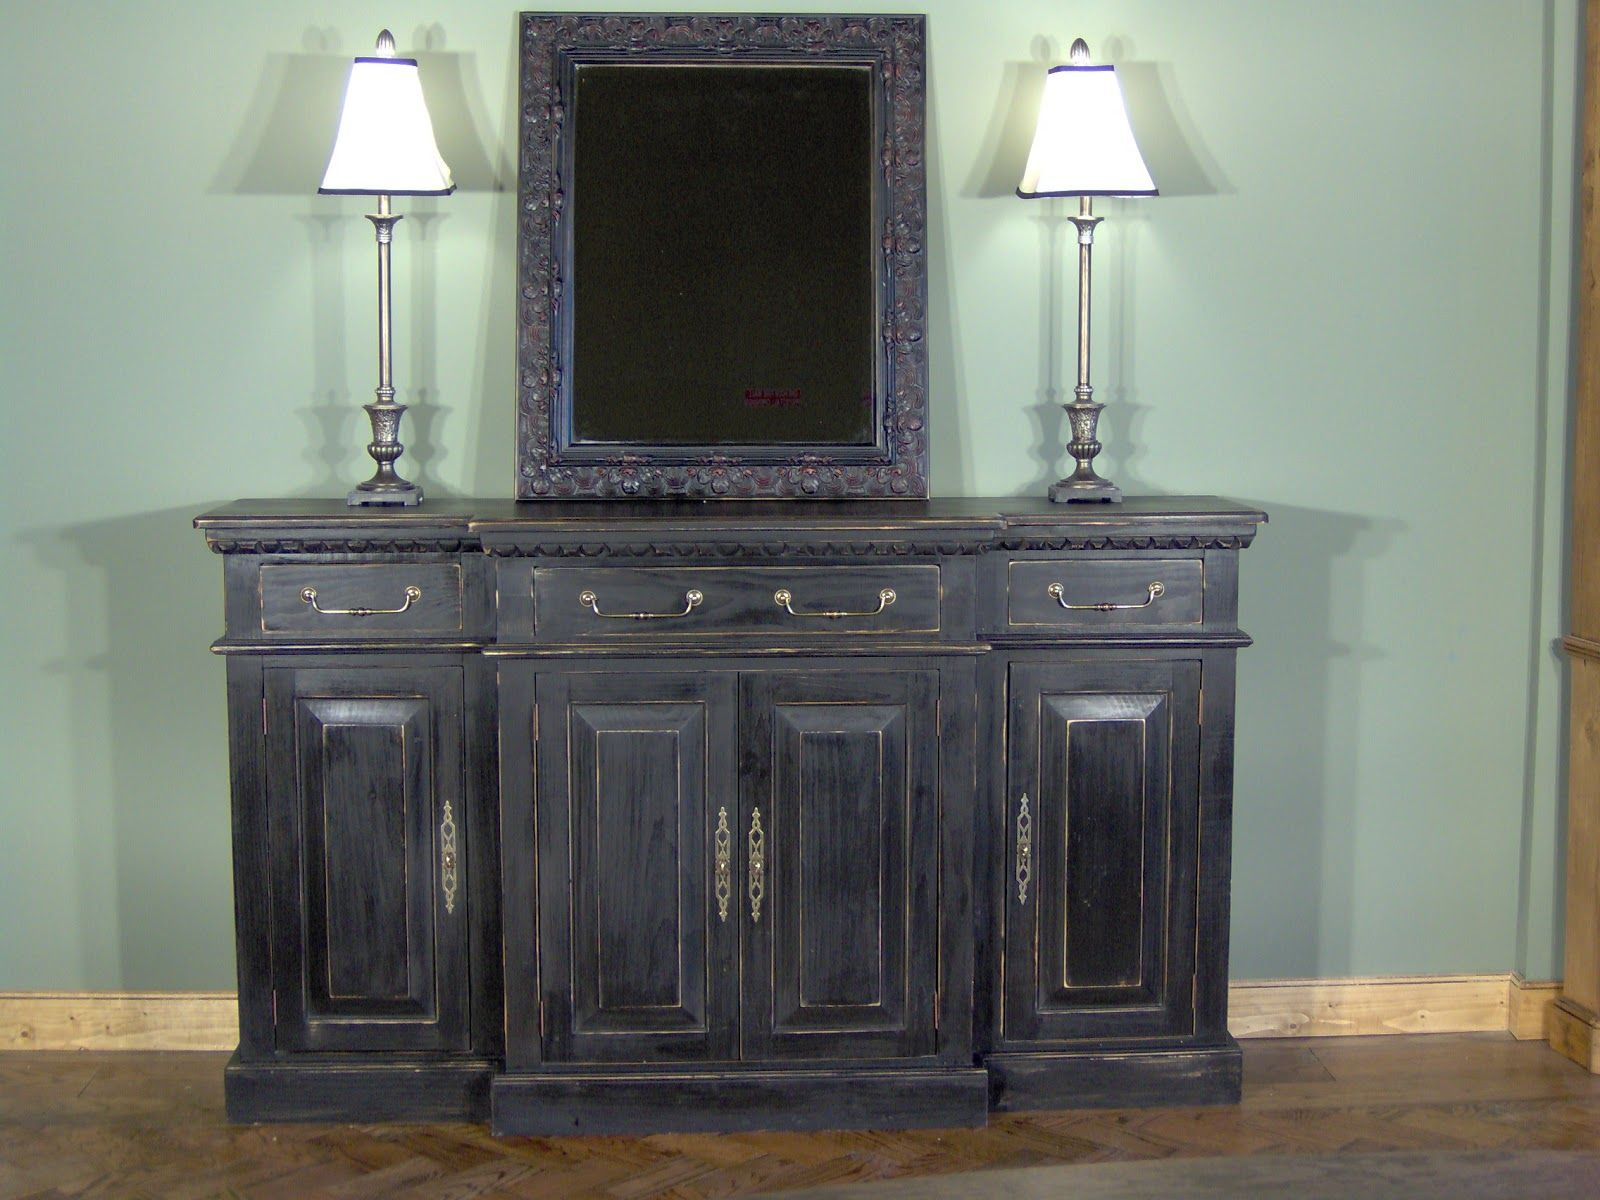 Next Up In Our Discussion Of Furniture Lingo: Finishes.